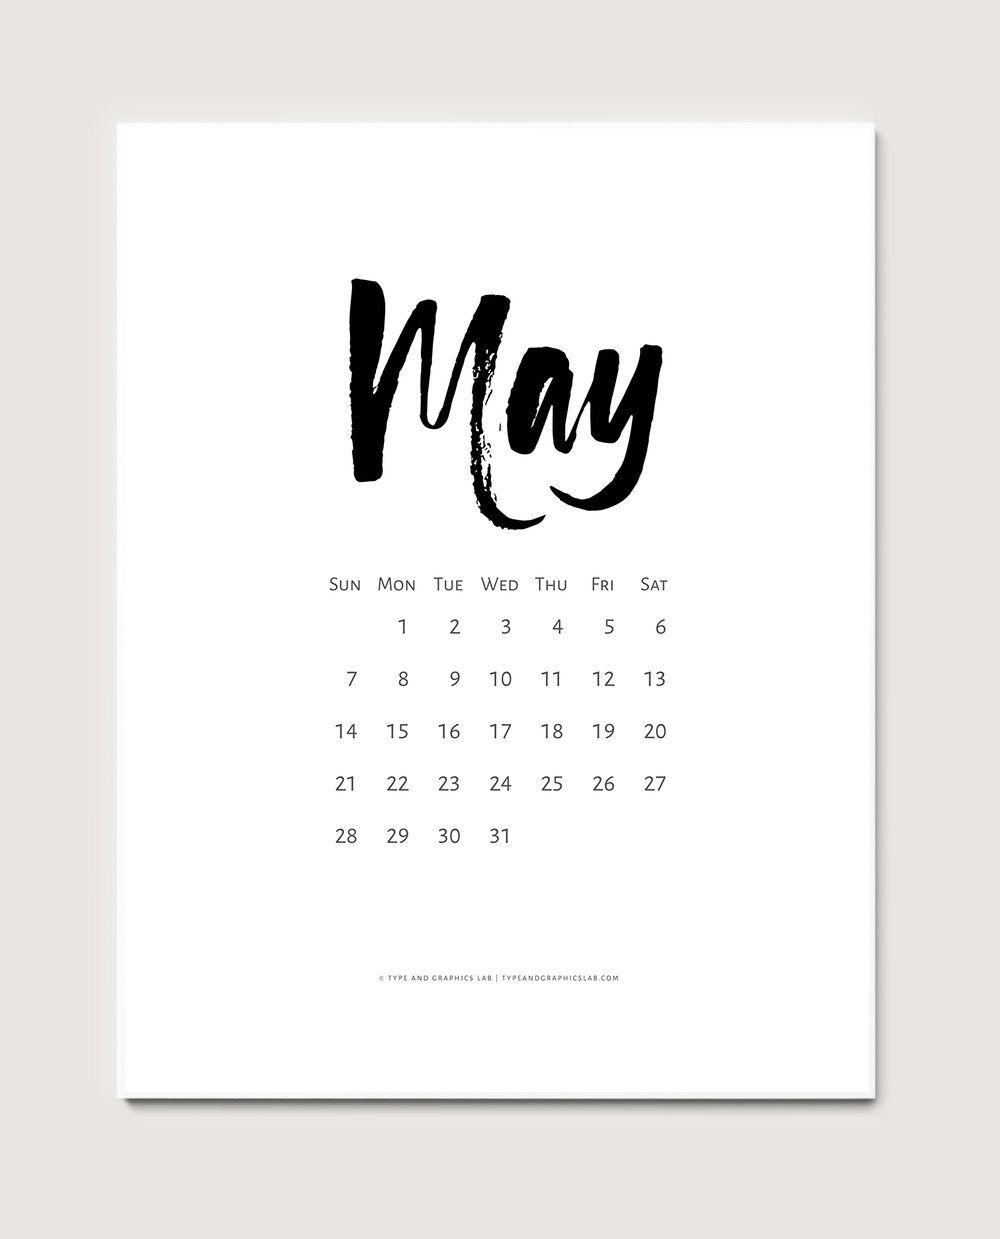 Calendar May 2018 Tumblr : Free calendar may lettering hand drawn digital